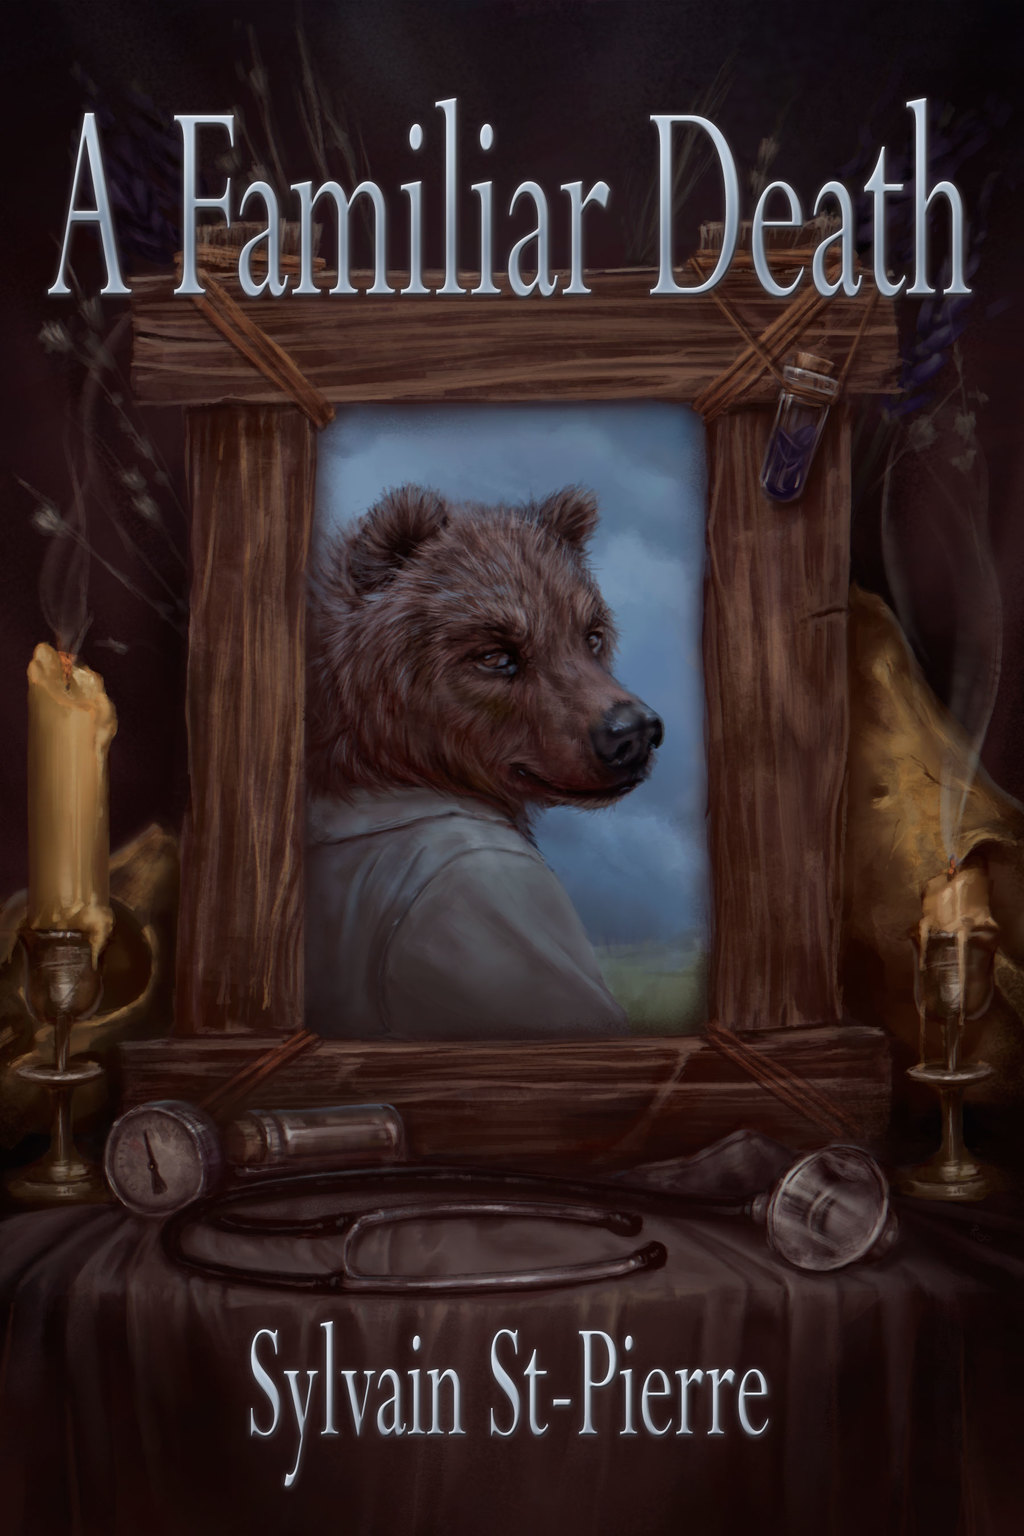 A Familiar Death, is now available for Pre-Order